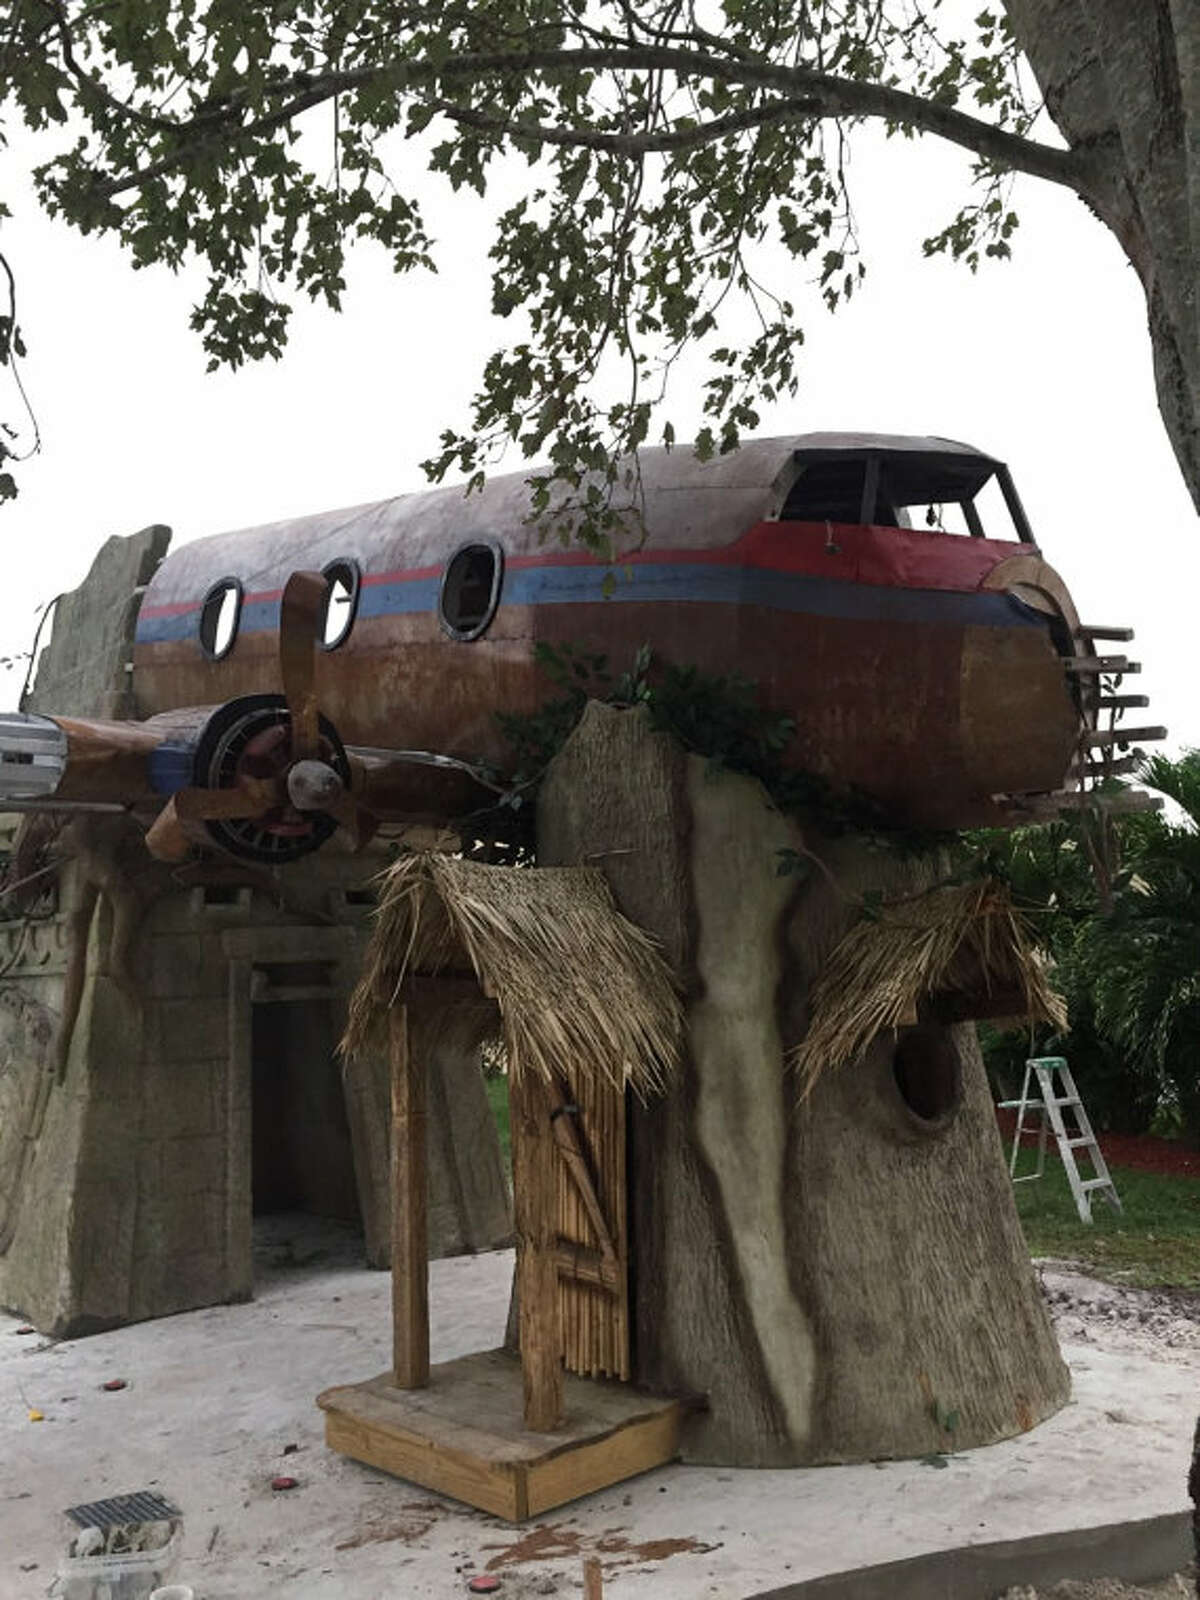 Tiny Town Studios is aHoustonsculpture company that creates playhouses, treehouses and themed environments.